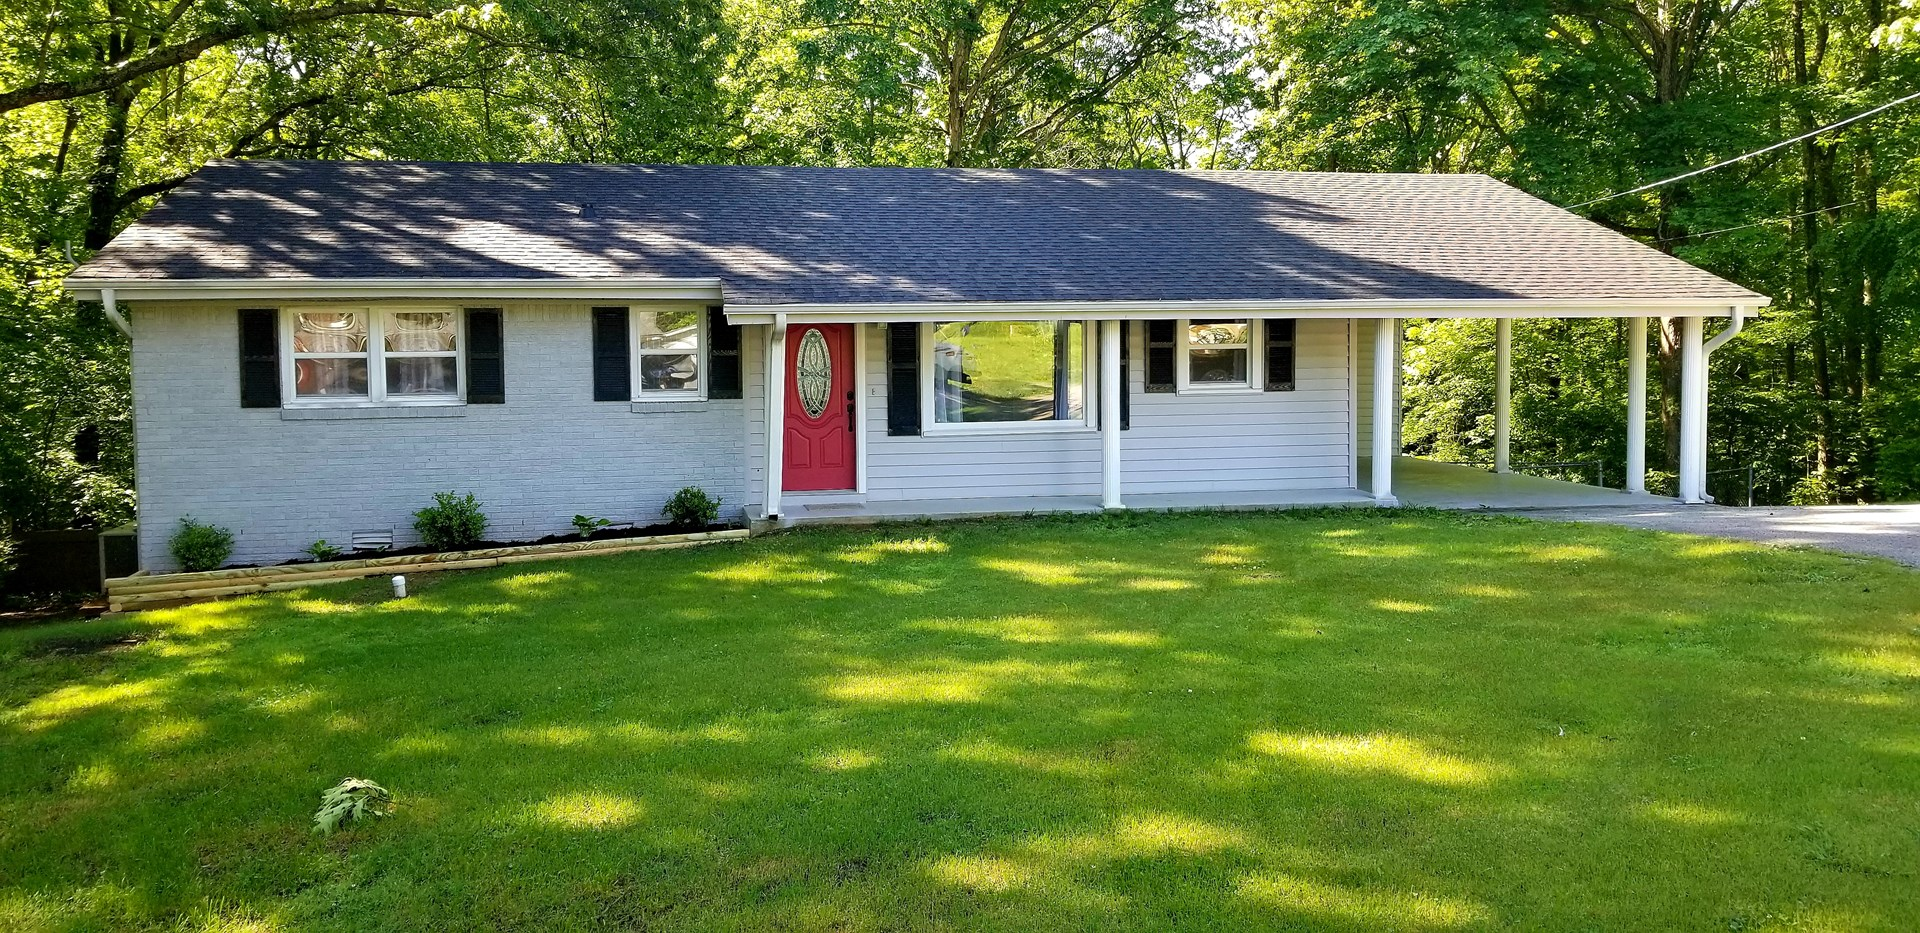 Charming Home For Sale in Lexington TN